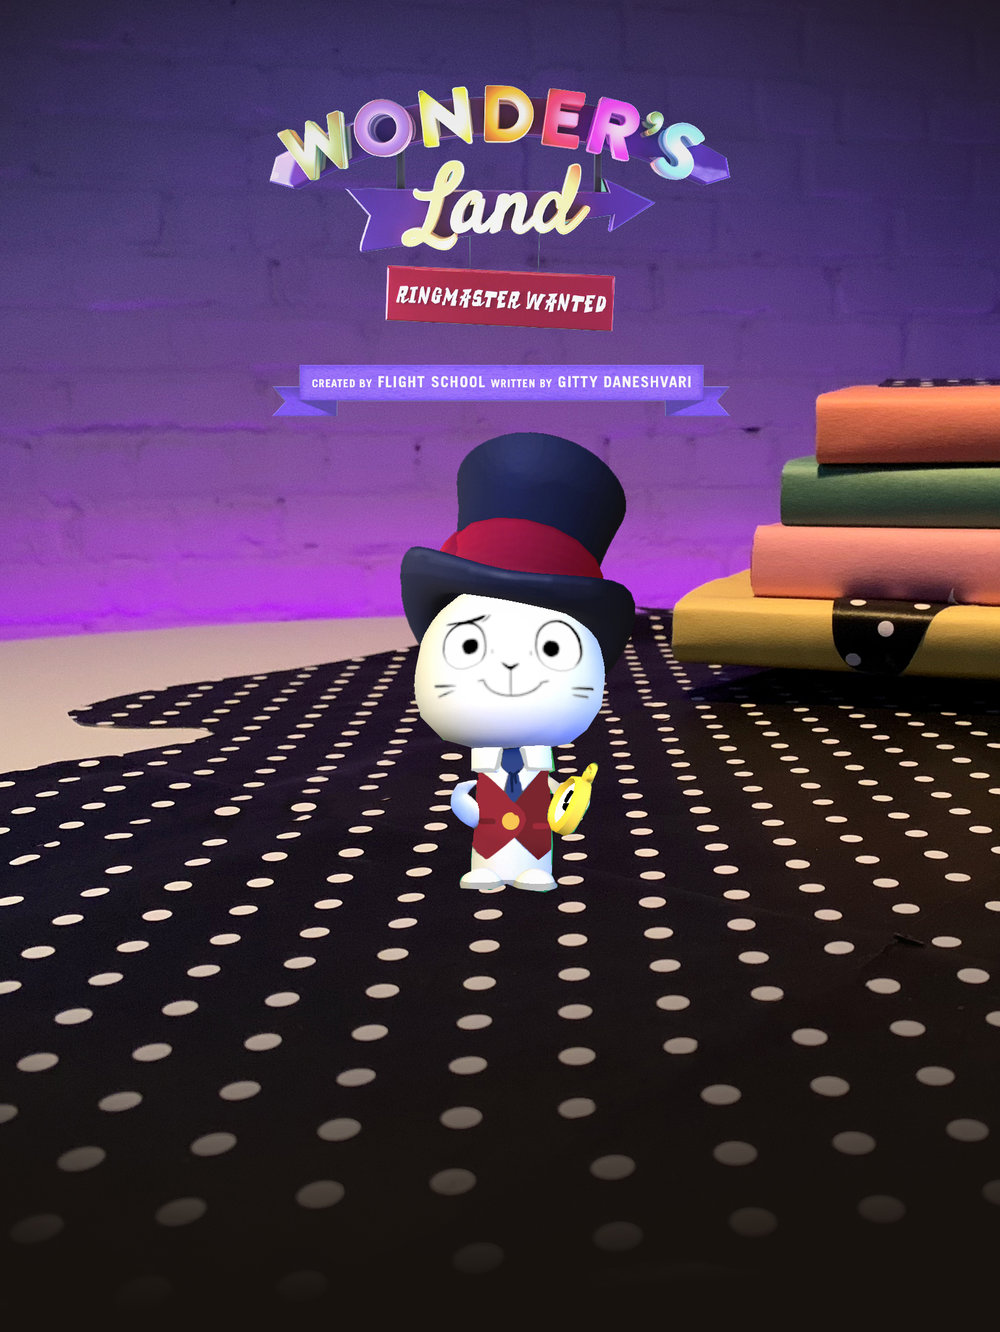 - Flight School and Within partnered to create an augmented reality short. Wonder, The Ringmaster of Wonder's Land, wants you to take over his job. There's just too much magic and he's had enough! But before you can take the job, he needs your help getting everyone ready for the carnival's big opening. Use your voice to help Wonder round everyone up, and teach him a thing or two along the way.